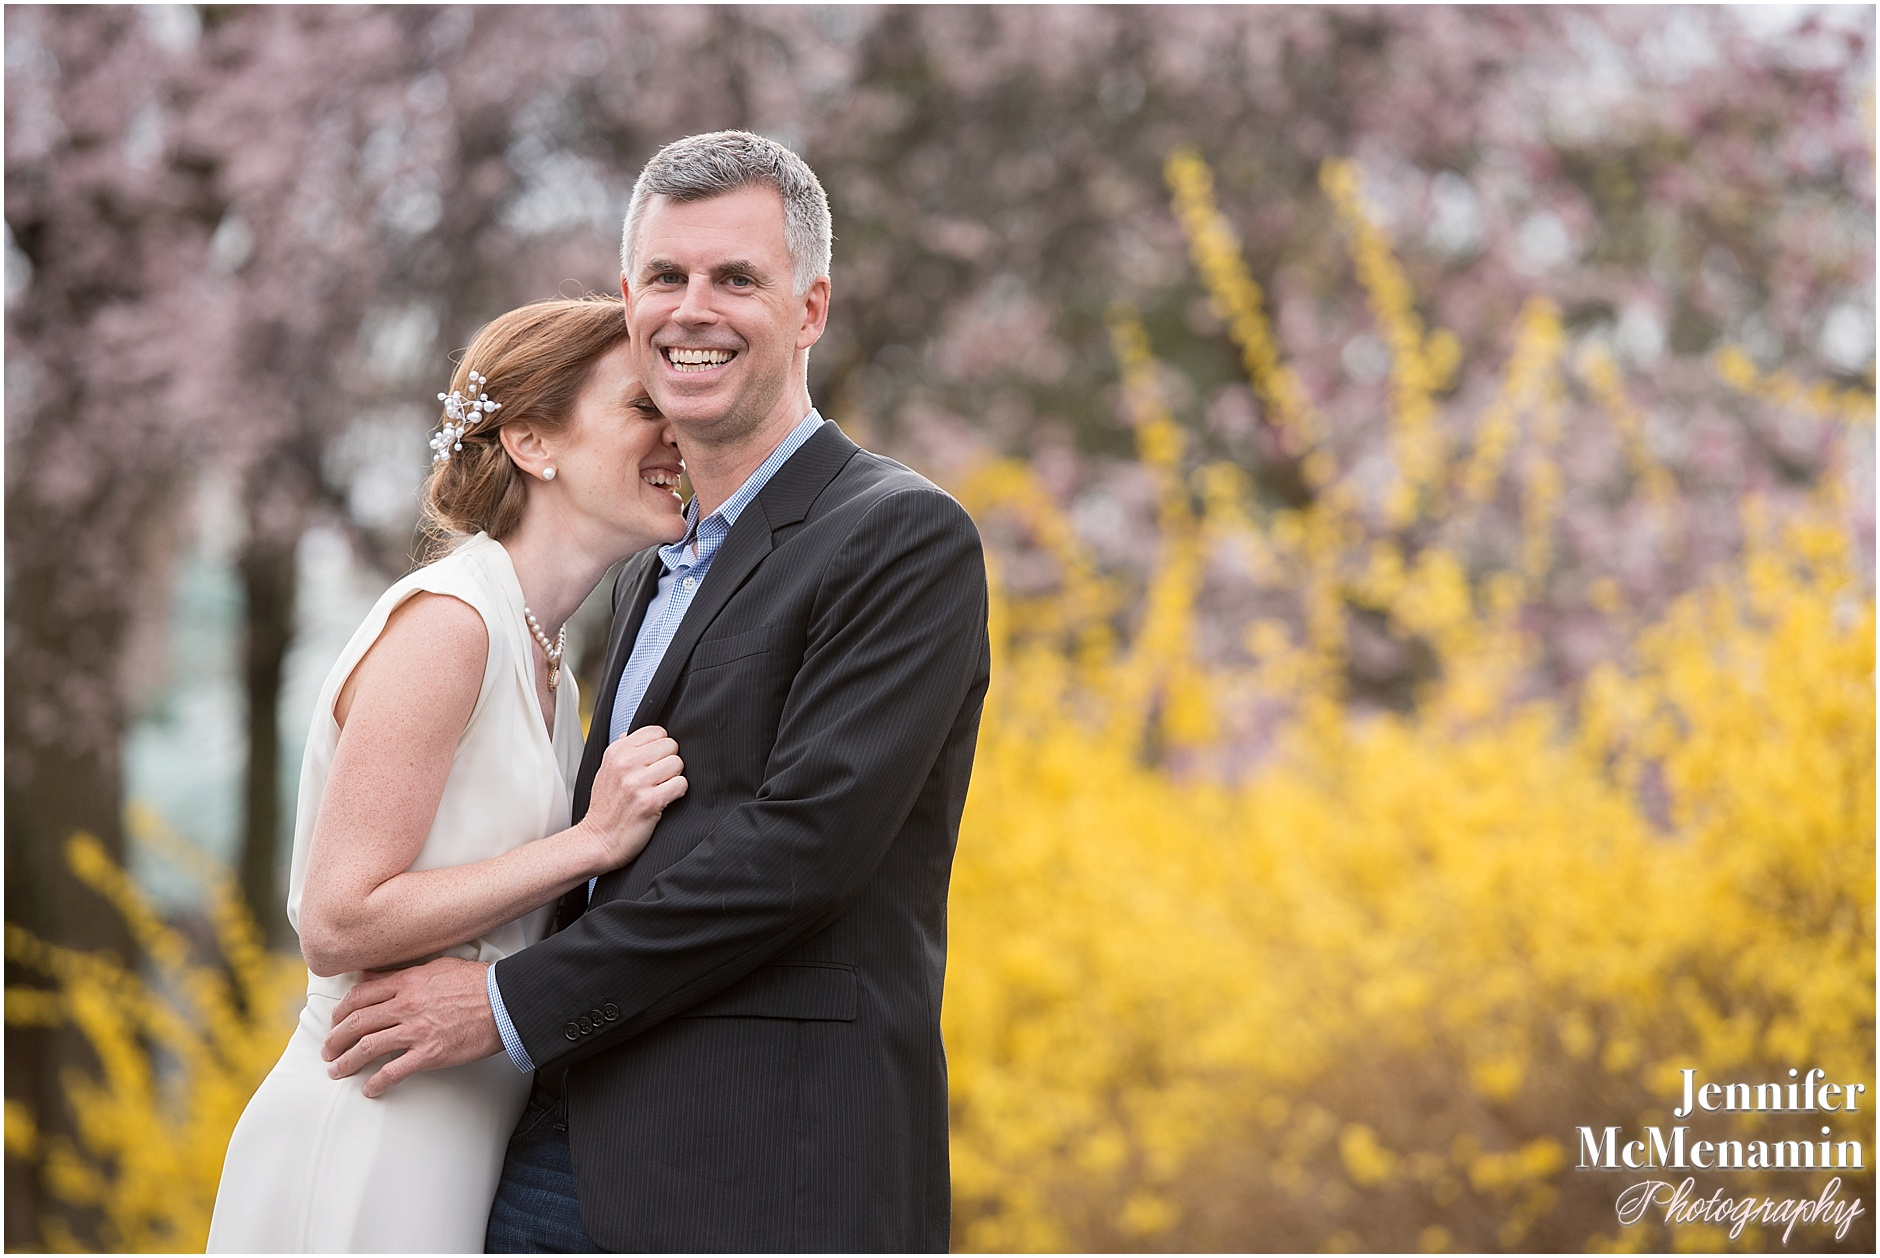 002-KnippLingle_0515-0141_Jennifer-McMenamin-Photography-Baltimore-engagement-photos